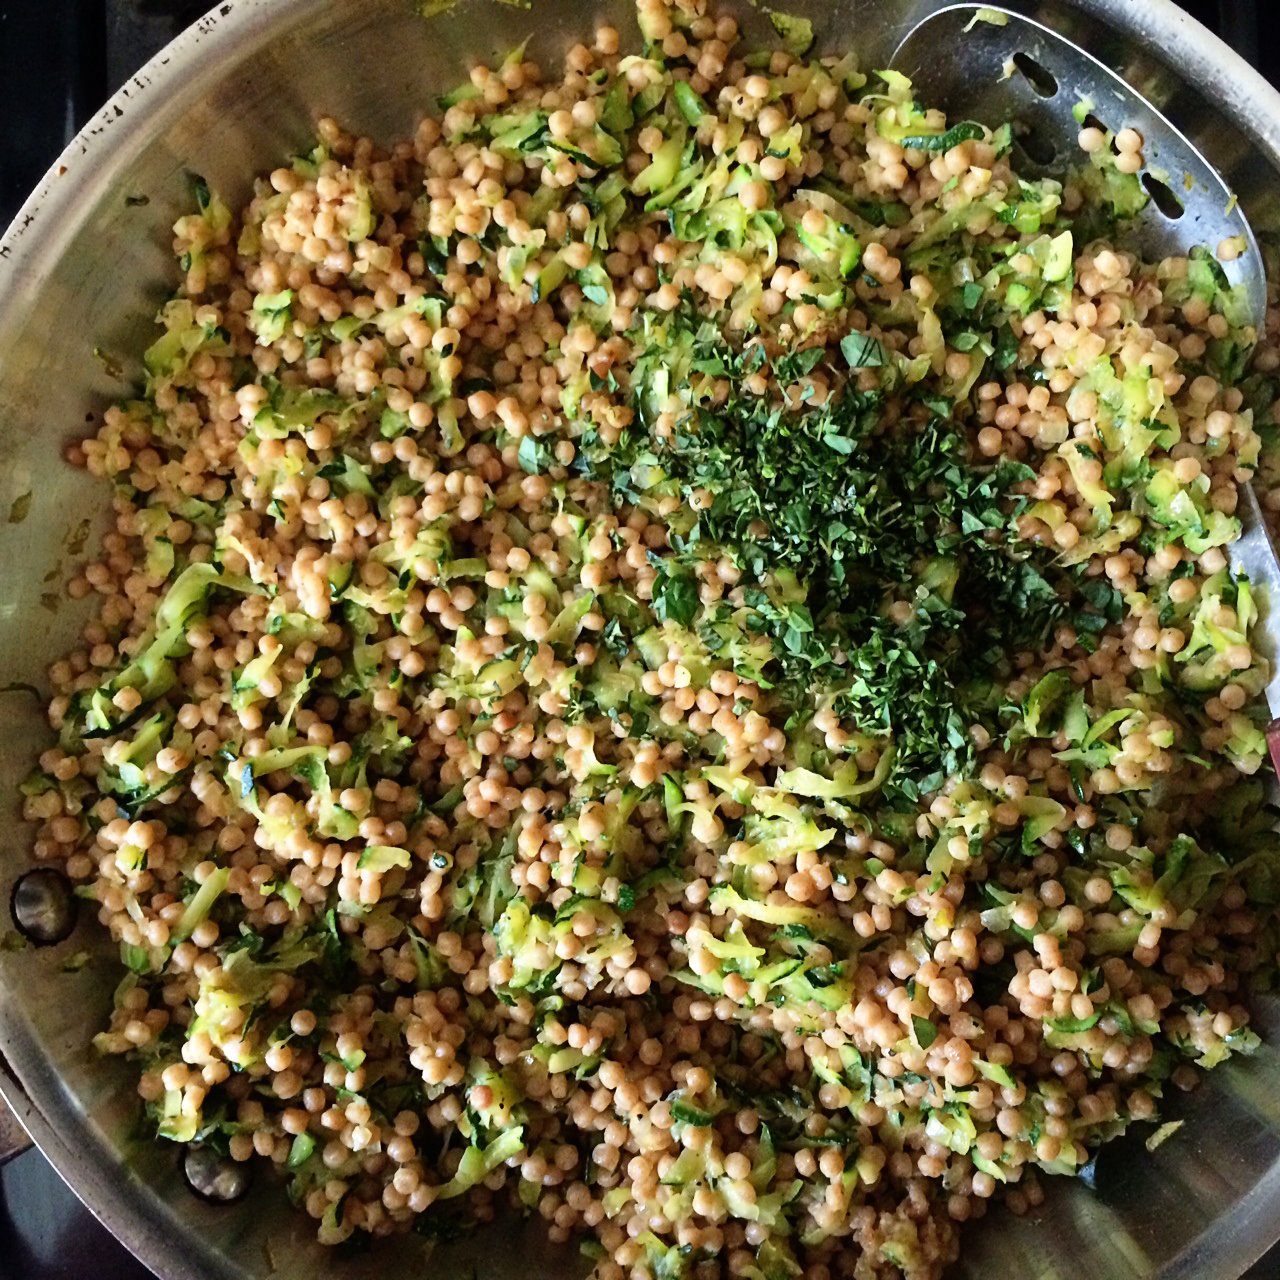 Happily, once the couscous was stirred into the zucchini, it broke right up and each little nubbin became  coated with the juices and oil present from the sautéed veggies. It was almost perfect, but  needed a little something more, so I ran to the garden to cut some oregano to toss in.